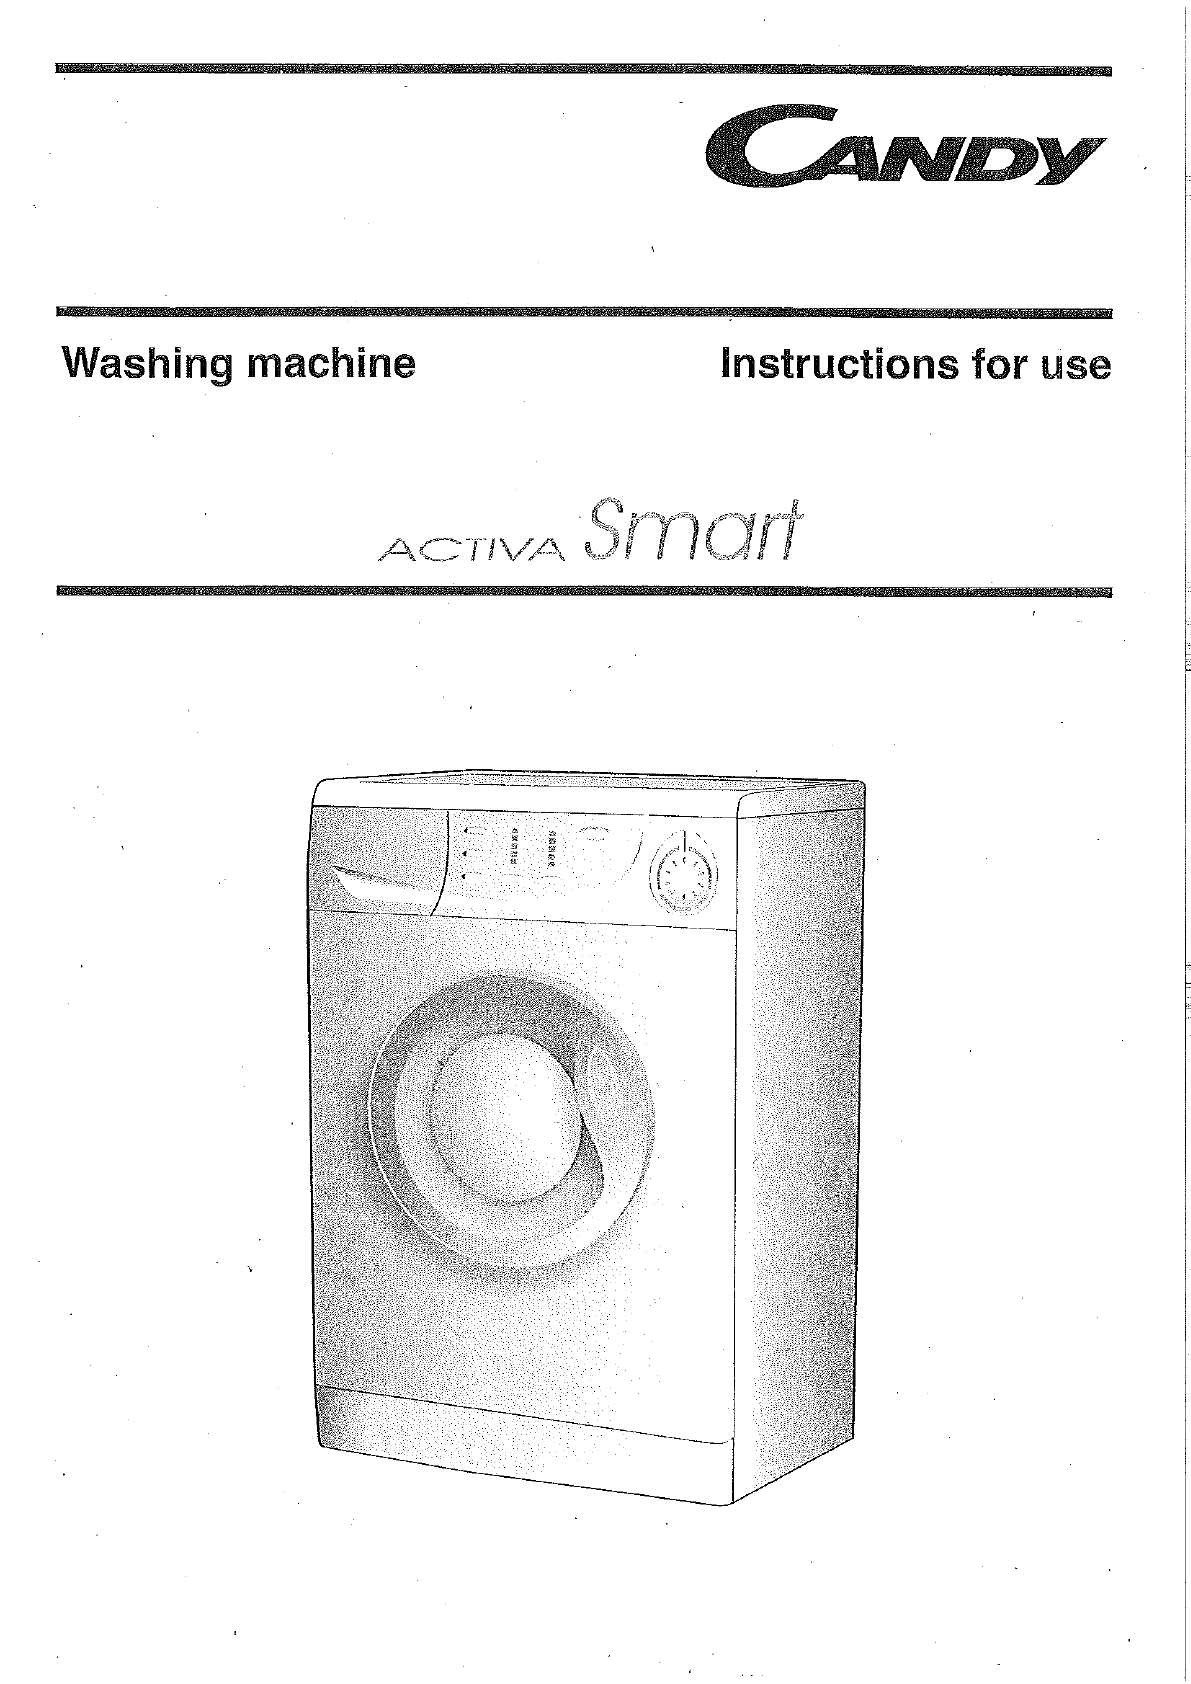 Manual Candy Cm1 126 Page 1 Of 30 English